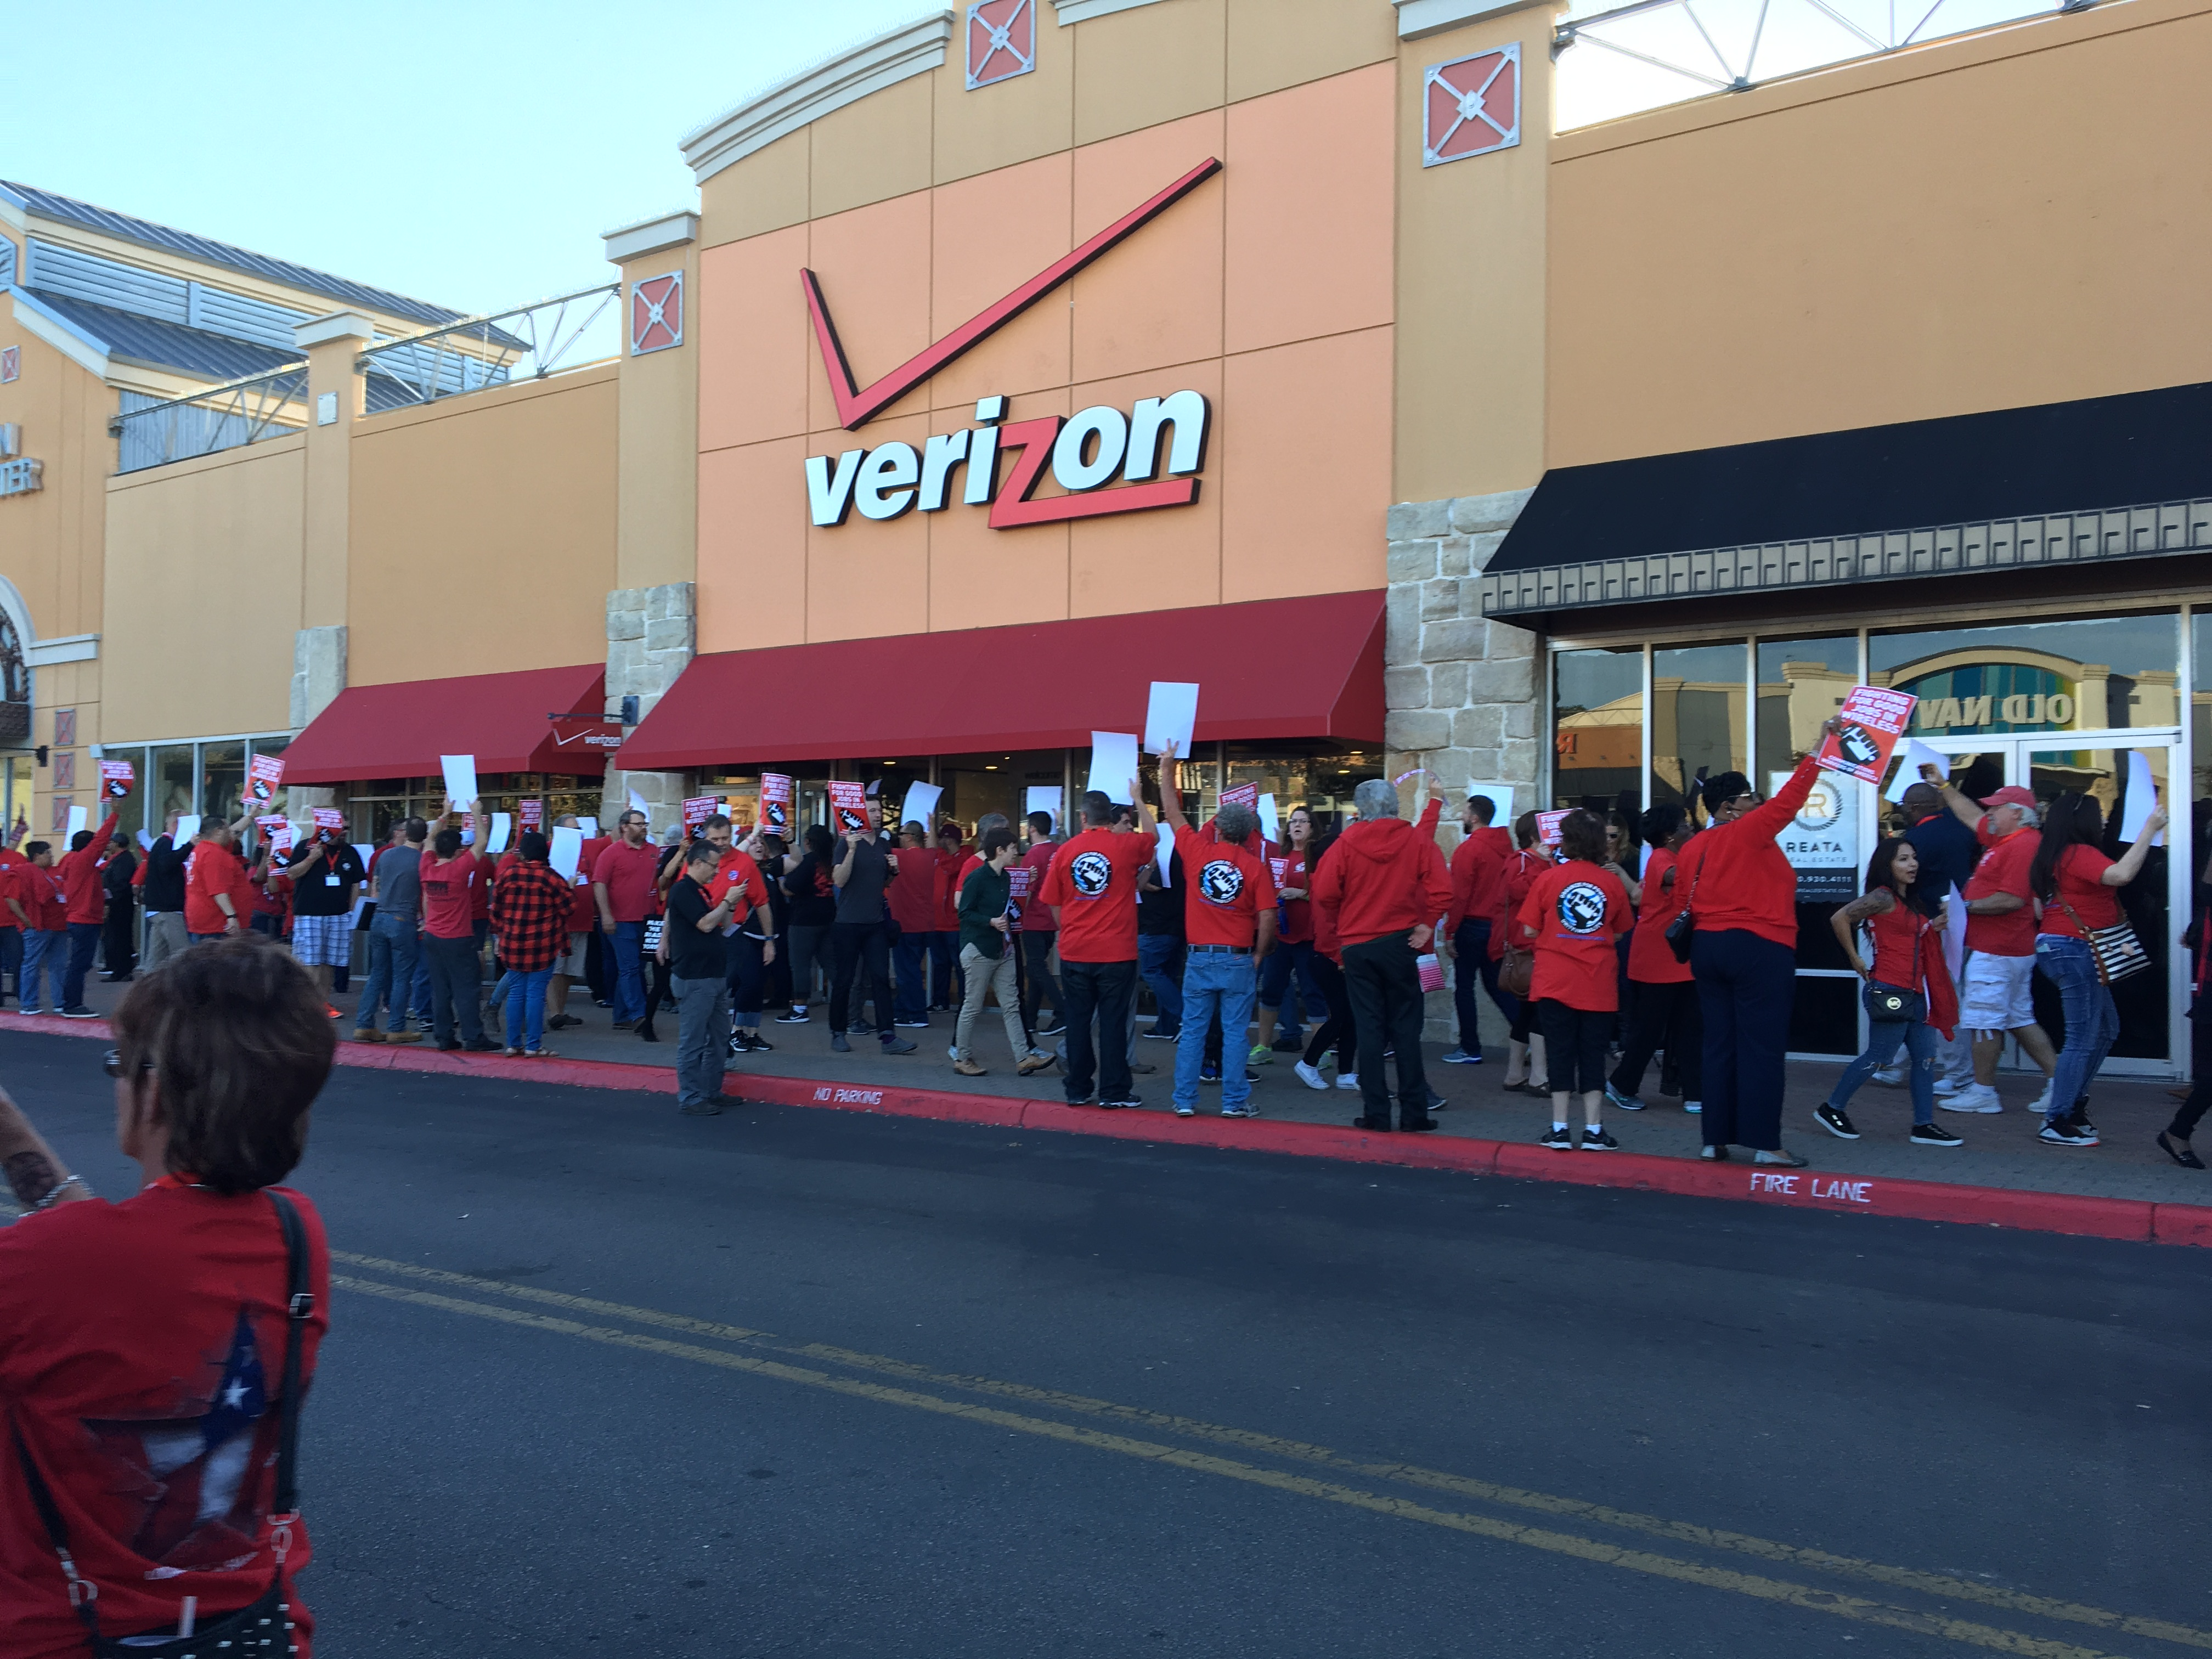 CWA union members in front of a Verizon Wireless stort